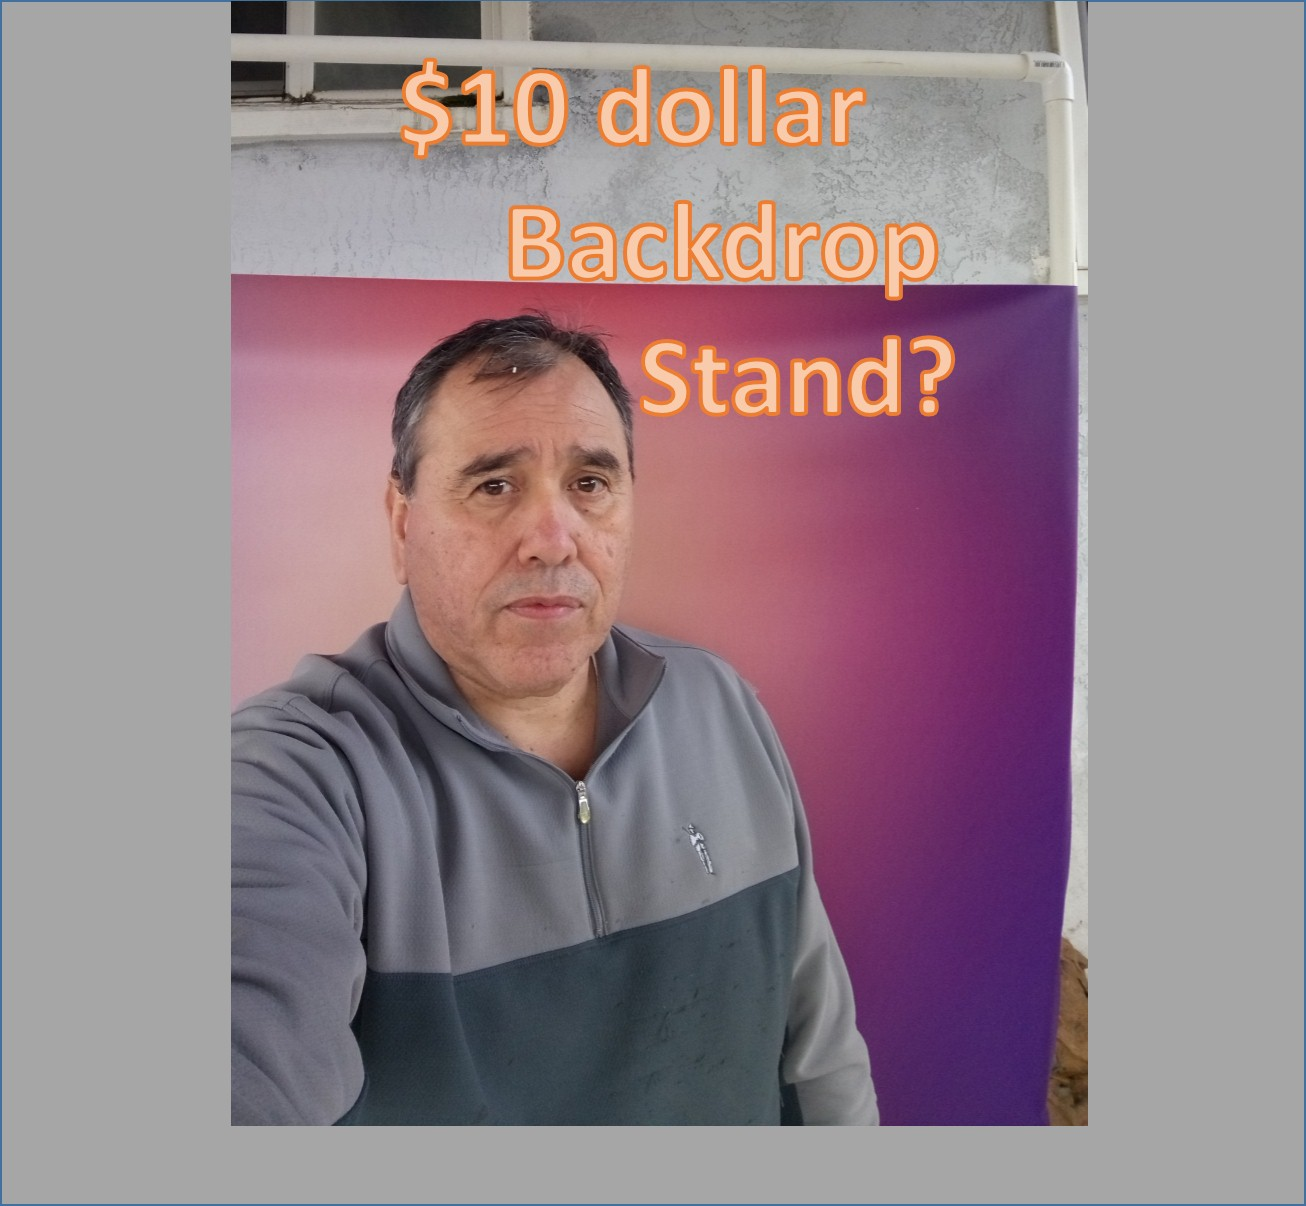 Make a Tall Backdrop Stand for Under $20.00